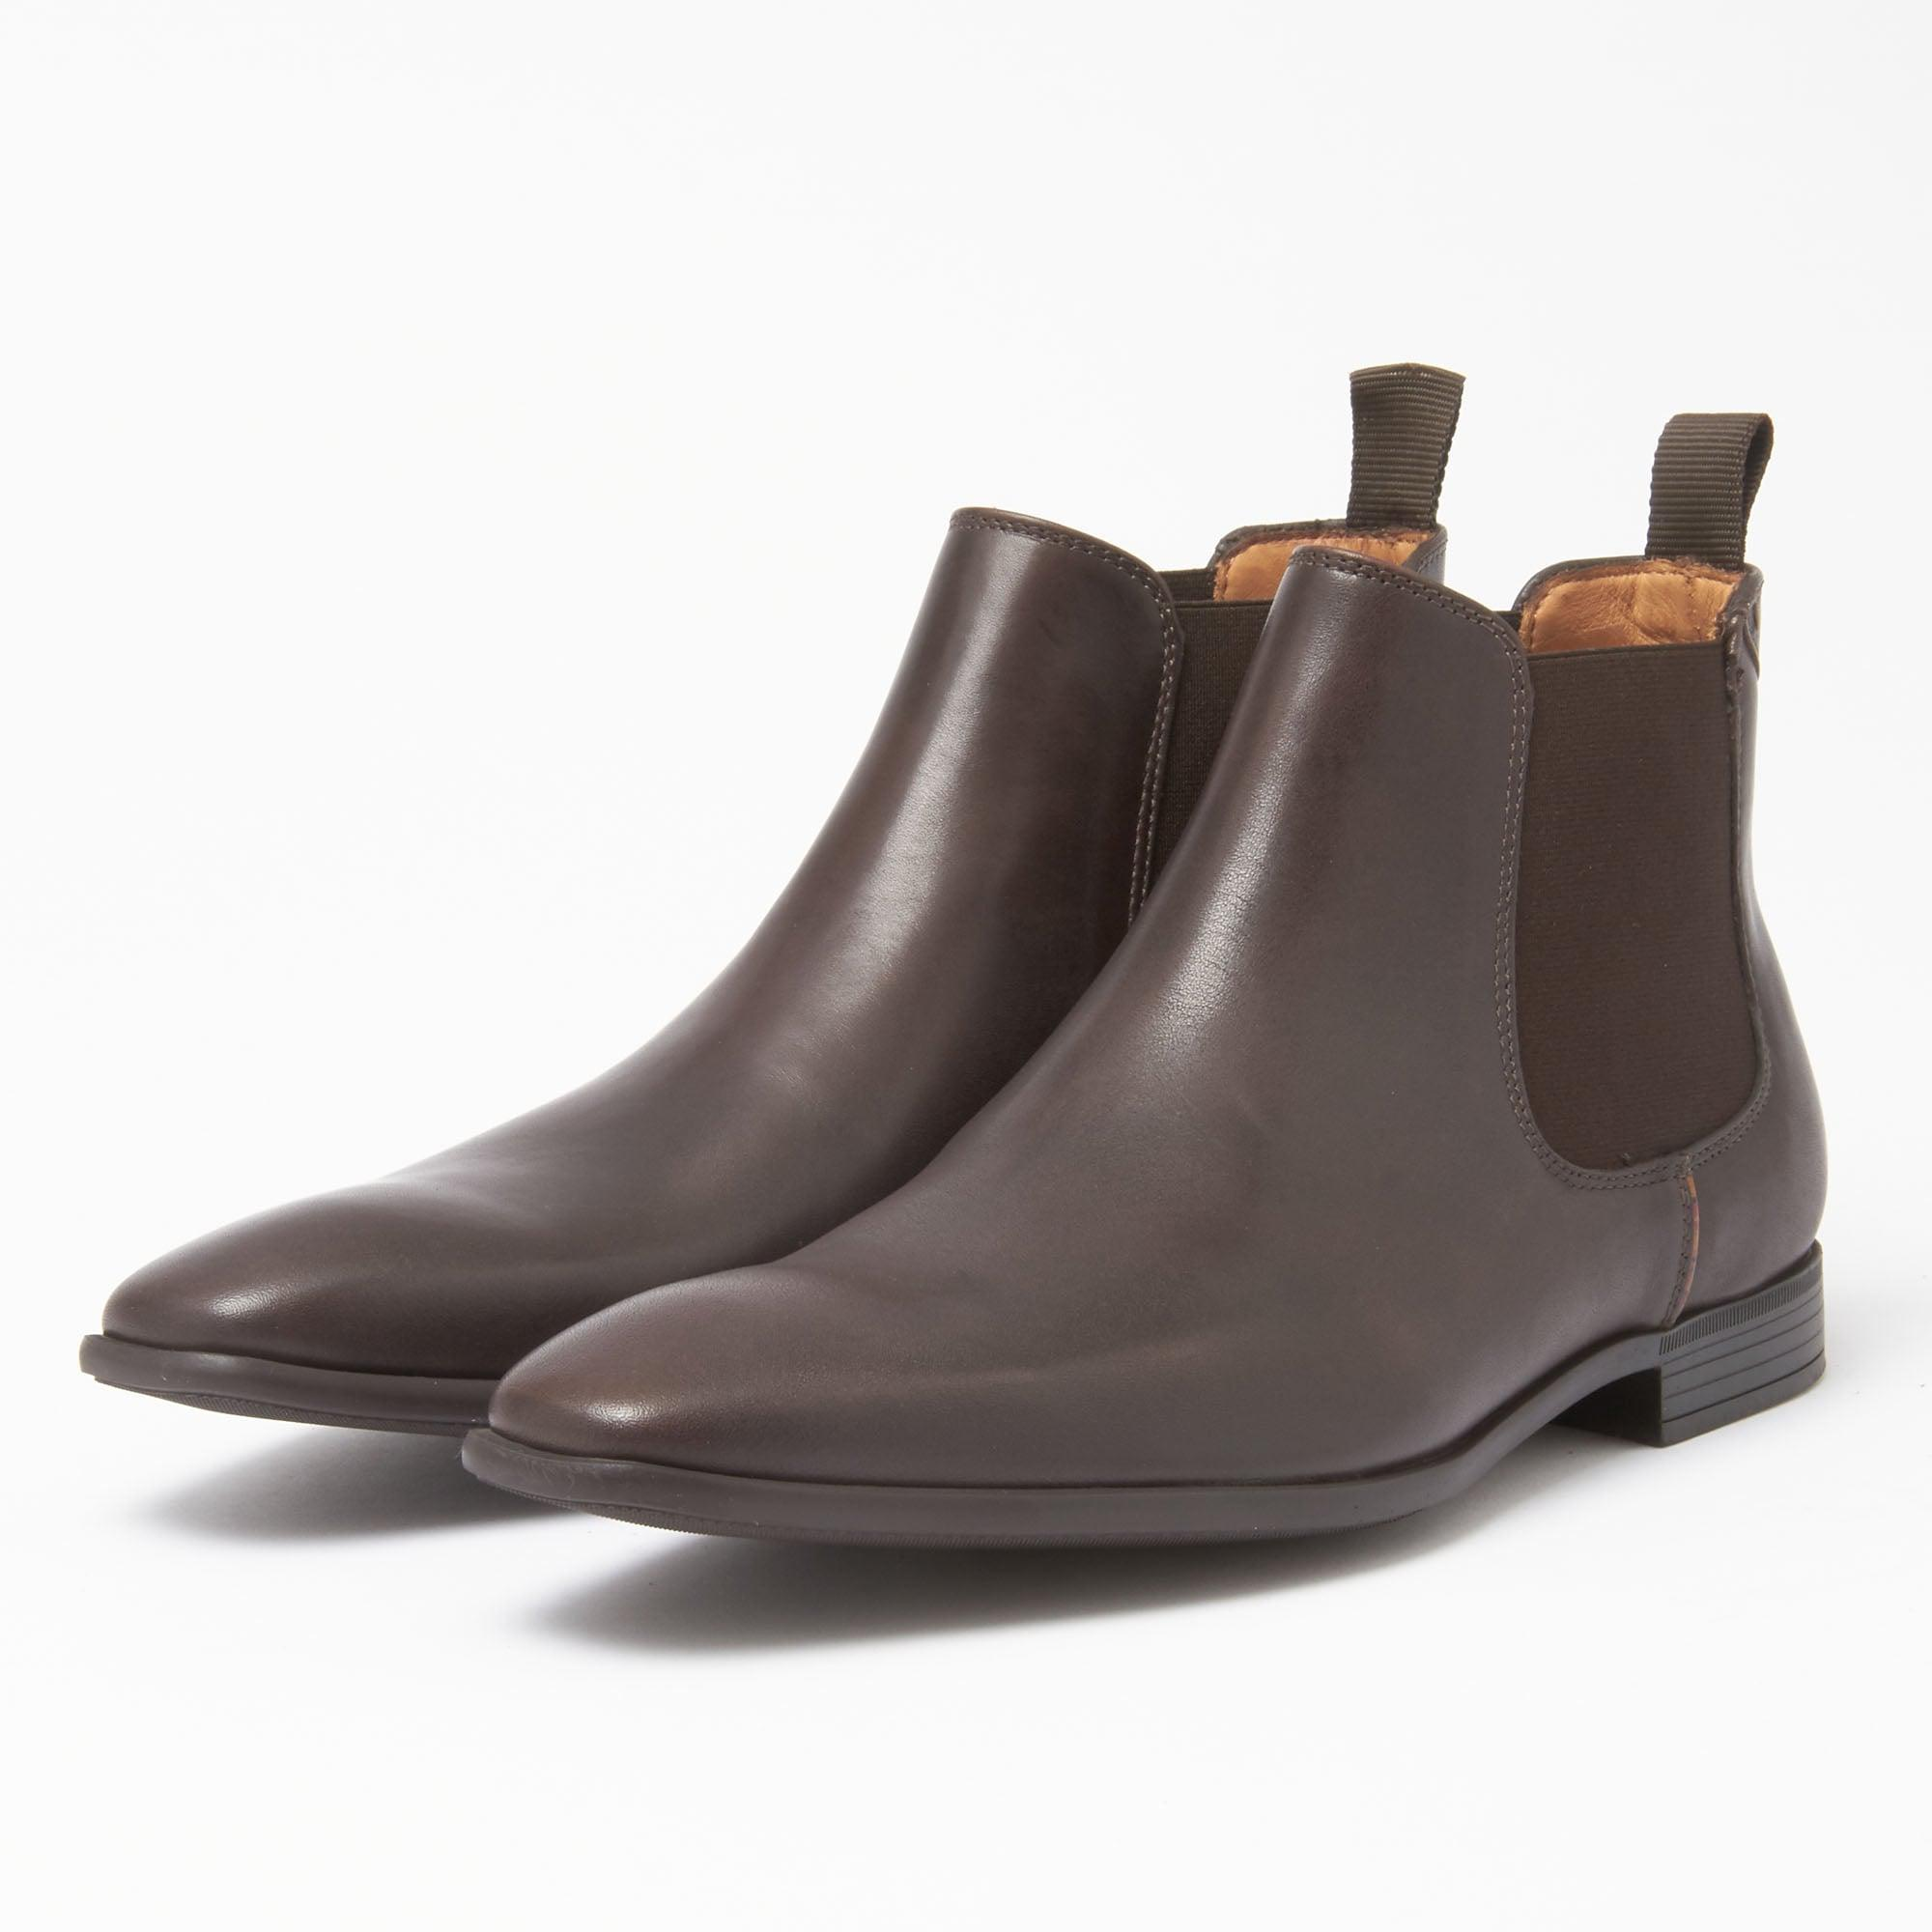 0292273c3a2 Paul Smith. Men s Paul Smith Dark Brown Leather  falconer  Chelsea Boots